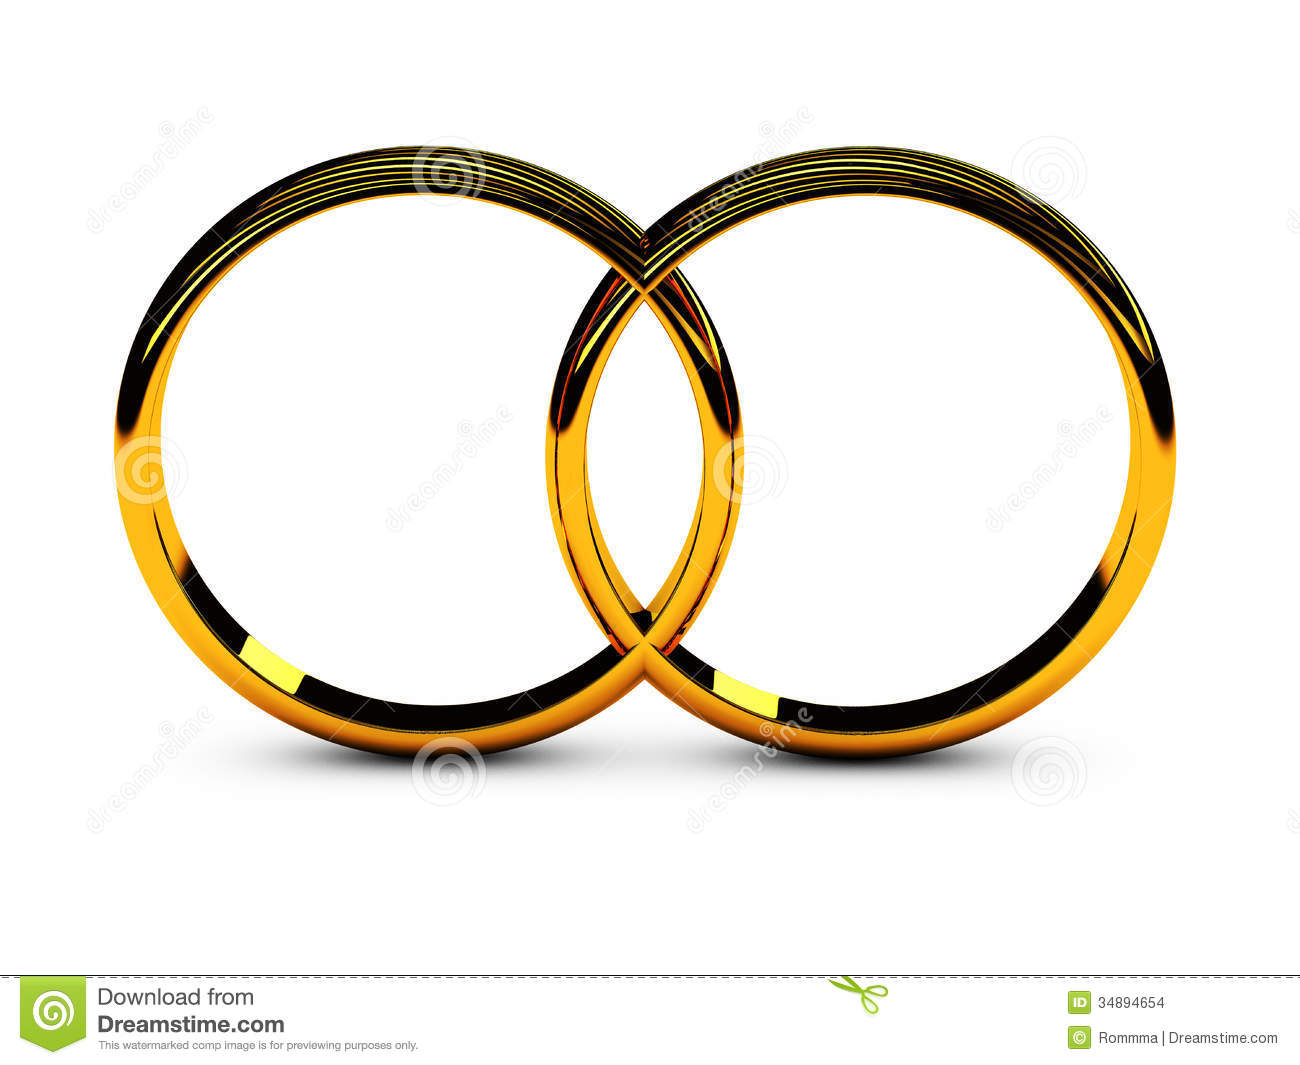 Two wedding rings symbol of love and loyalty.